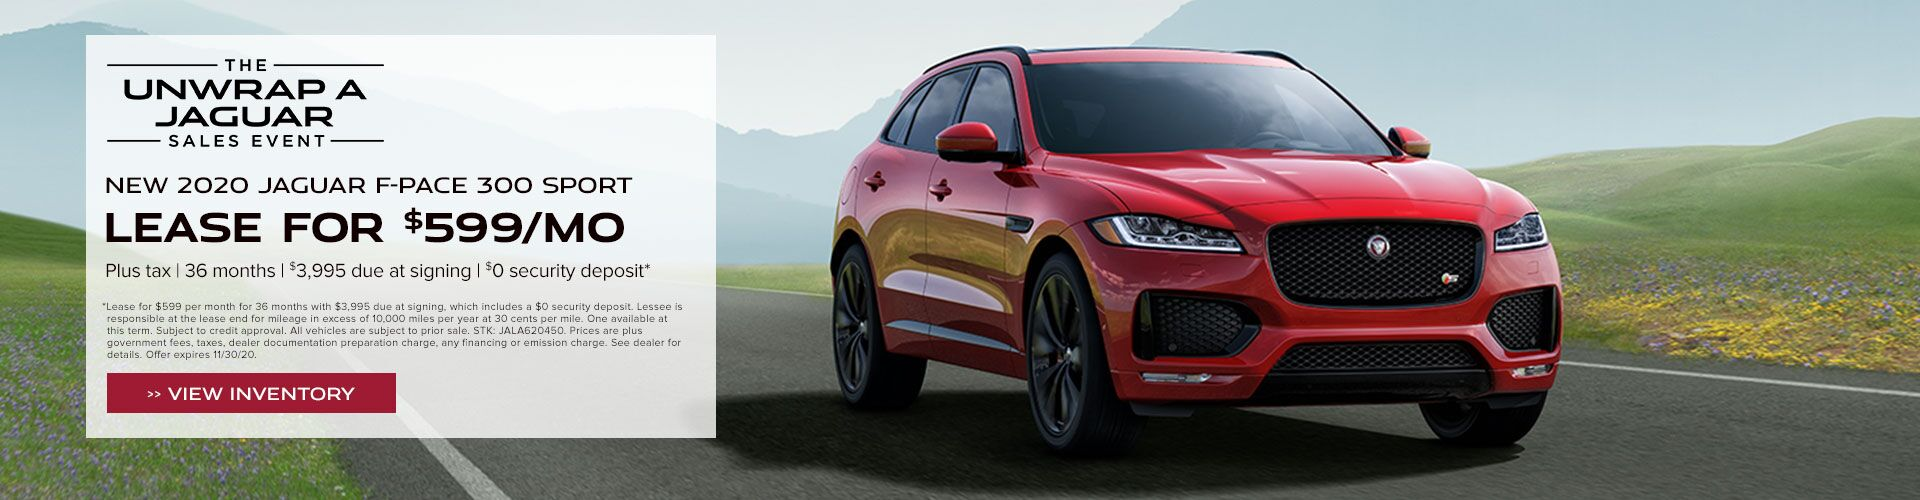 New 2020 Jaguar F-PACE 300 SPORT